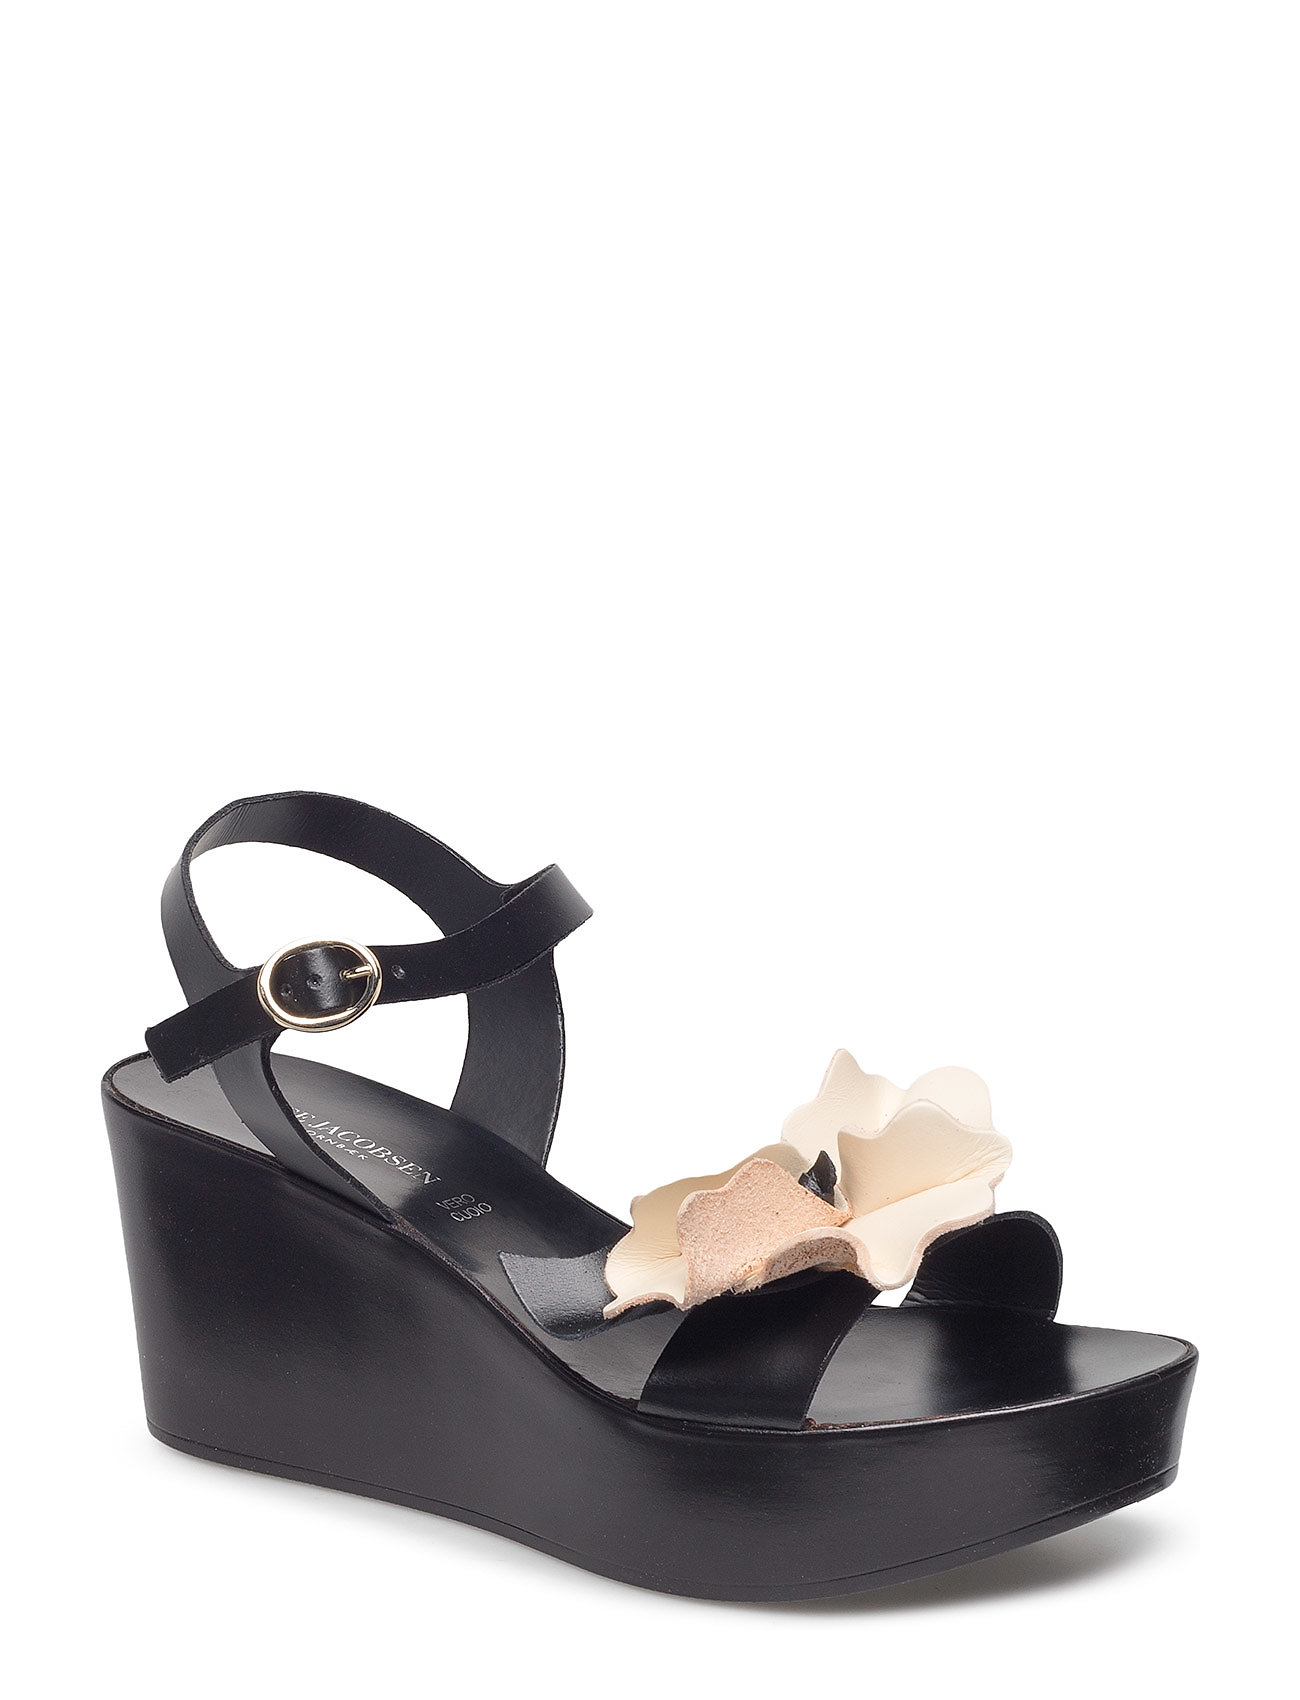 Ilse Jacobsen HIGH HEEL SANDAL